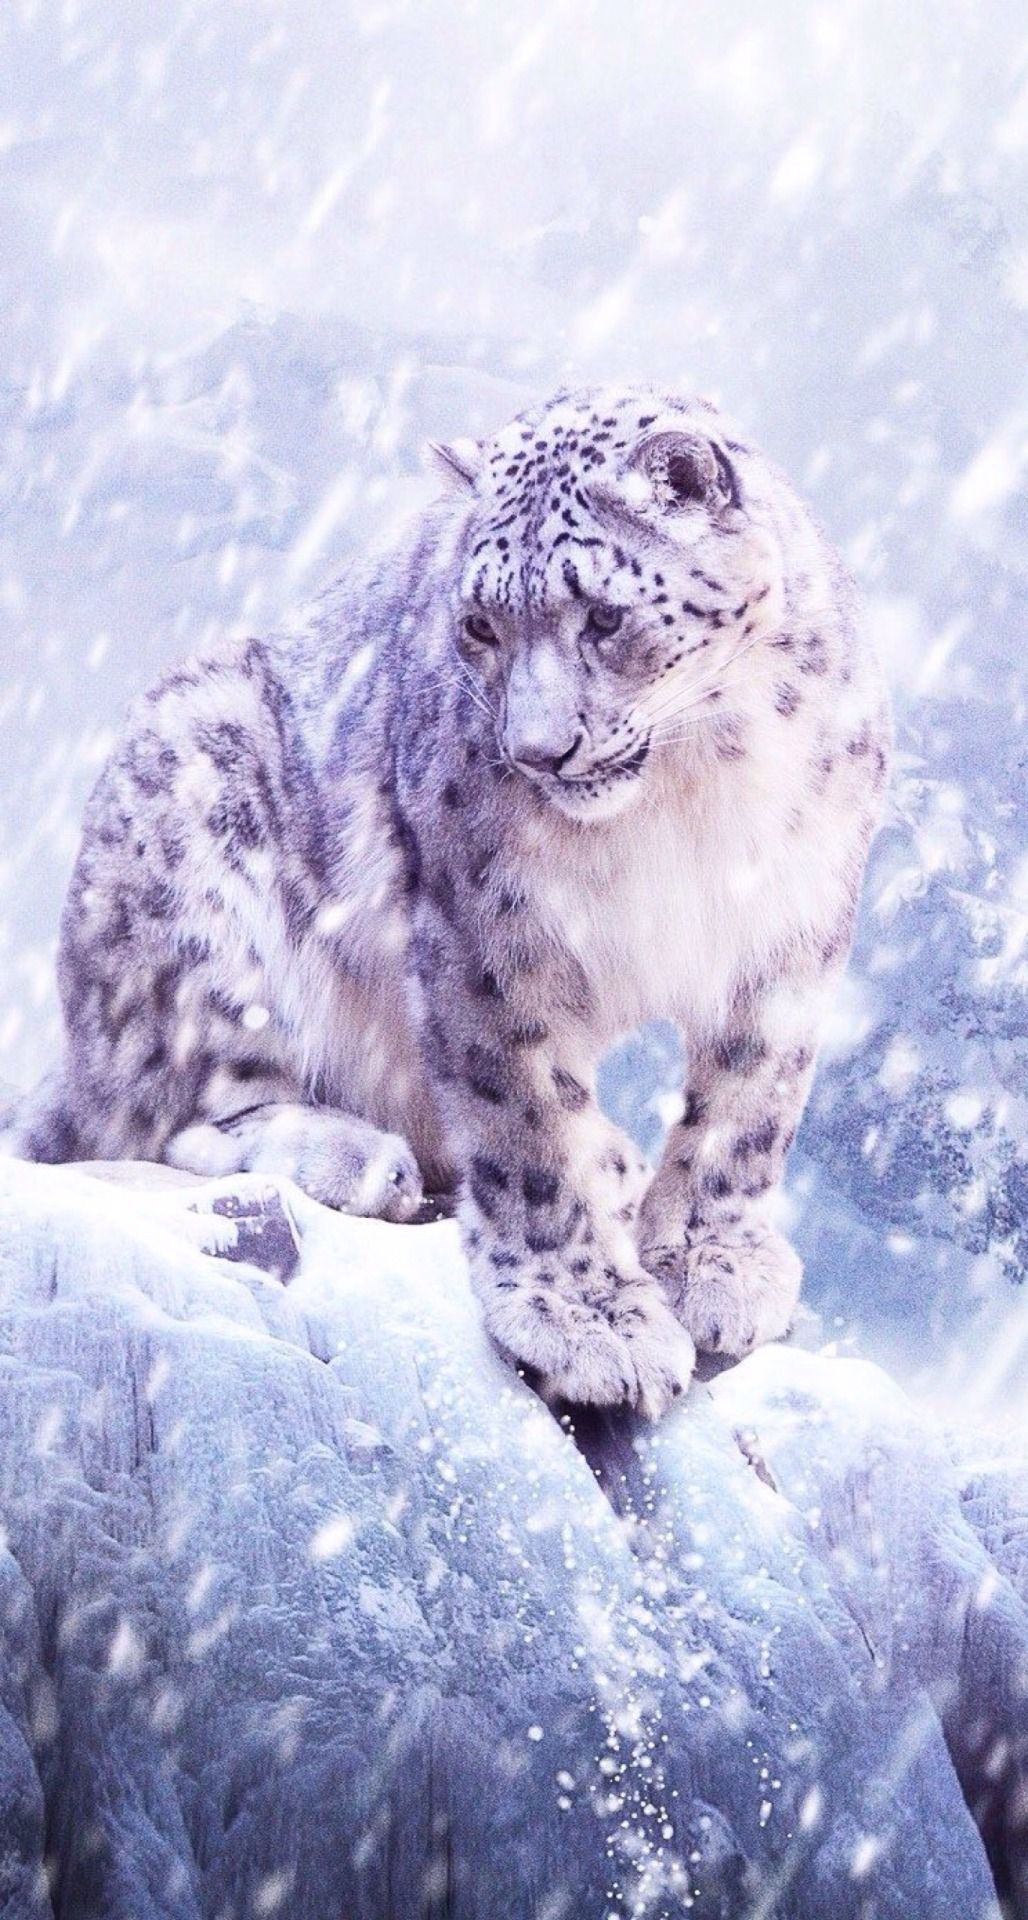 A Clouded Snow Leopard Out in the Blowing Falling Snow